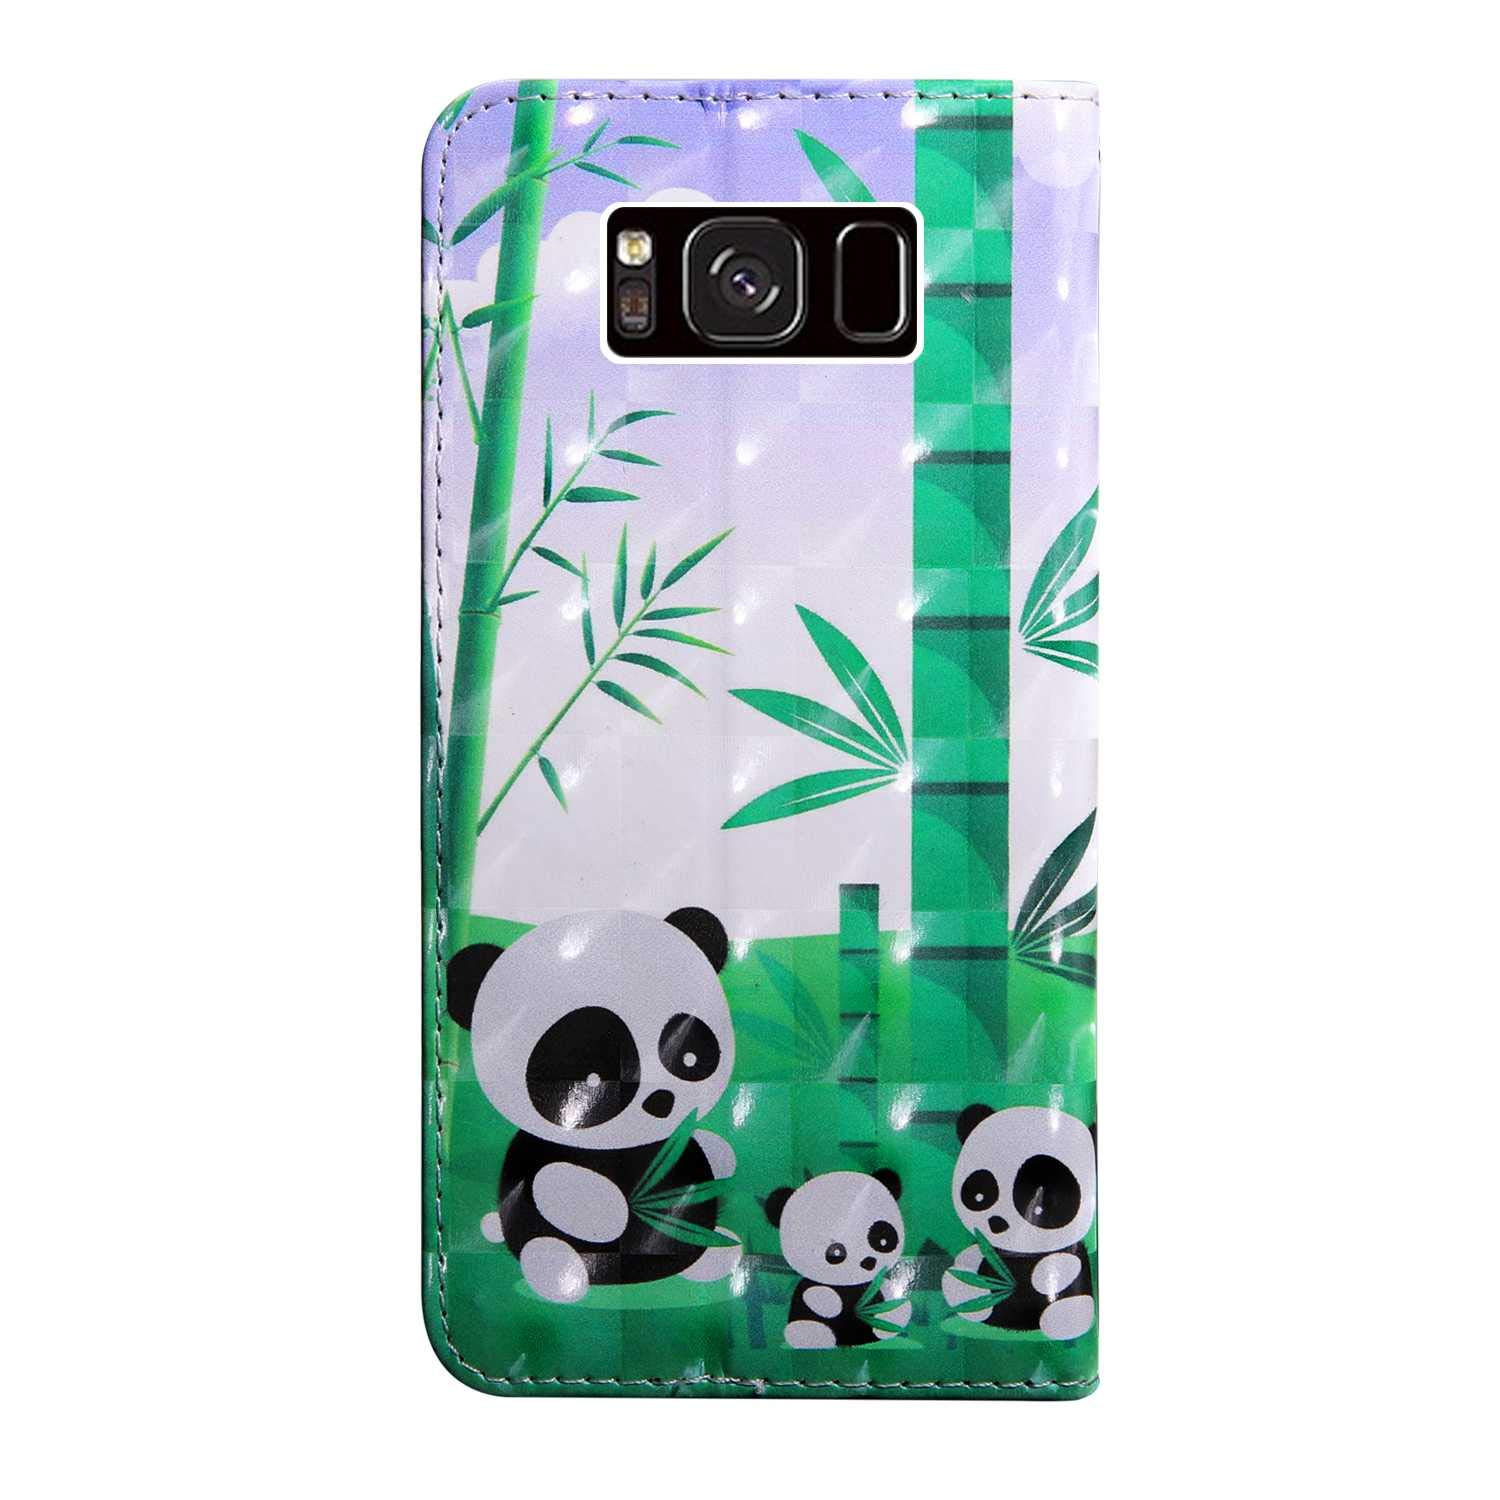 #2 Cat Bear Village Galaxy S8 Case PU Leather Book Style Cover with Card Slots 3D Pattern Design Wallet Flip Case for Samsung Galaxy S8